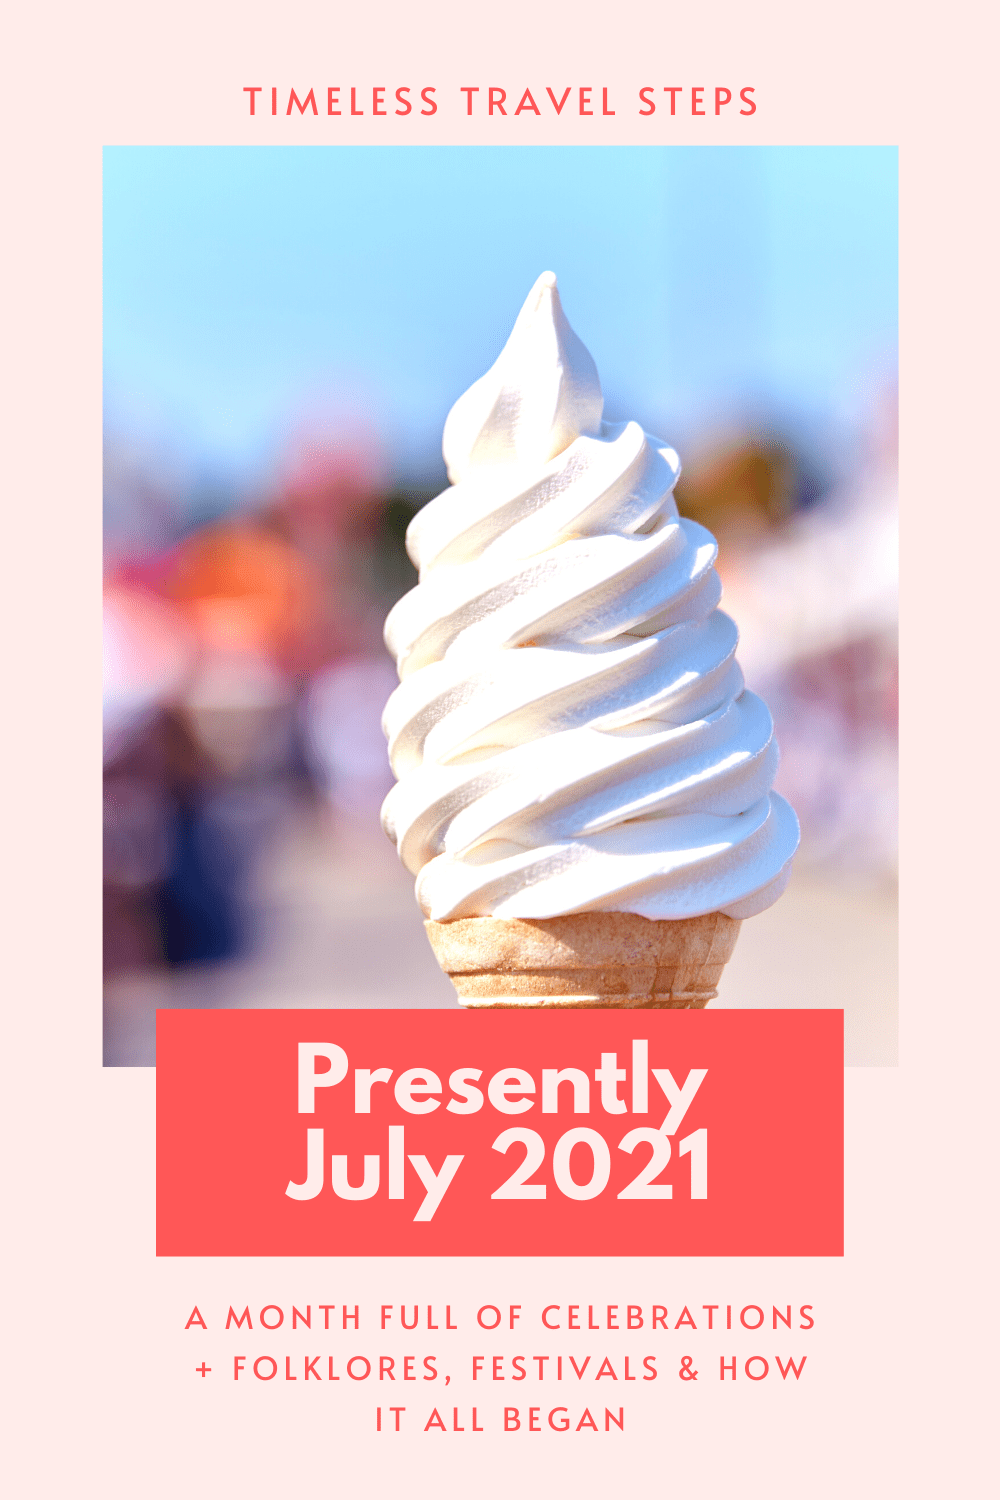 Month of July | Why is July important | What is special about July | Origins of July | July birthstone | July birth flower | Water lily | Presently July 2021 | Celebrations in July | National Picnic Month | Ice Cream Day | Haymaking in July | Ruby July birthstone | Pems of July | Folklores of July | Festivals in July | Henley Royal Regatta | World Chocolate Day | 4th July American Independence Day | Canada Day | St Swithins Day | Whitstable Oyster Festival | Larkspur | Julius Caesar | Gregorian Calendar via @GGeorgina_timelesstravelsteps/